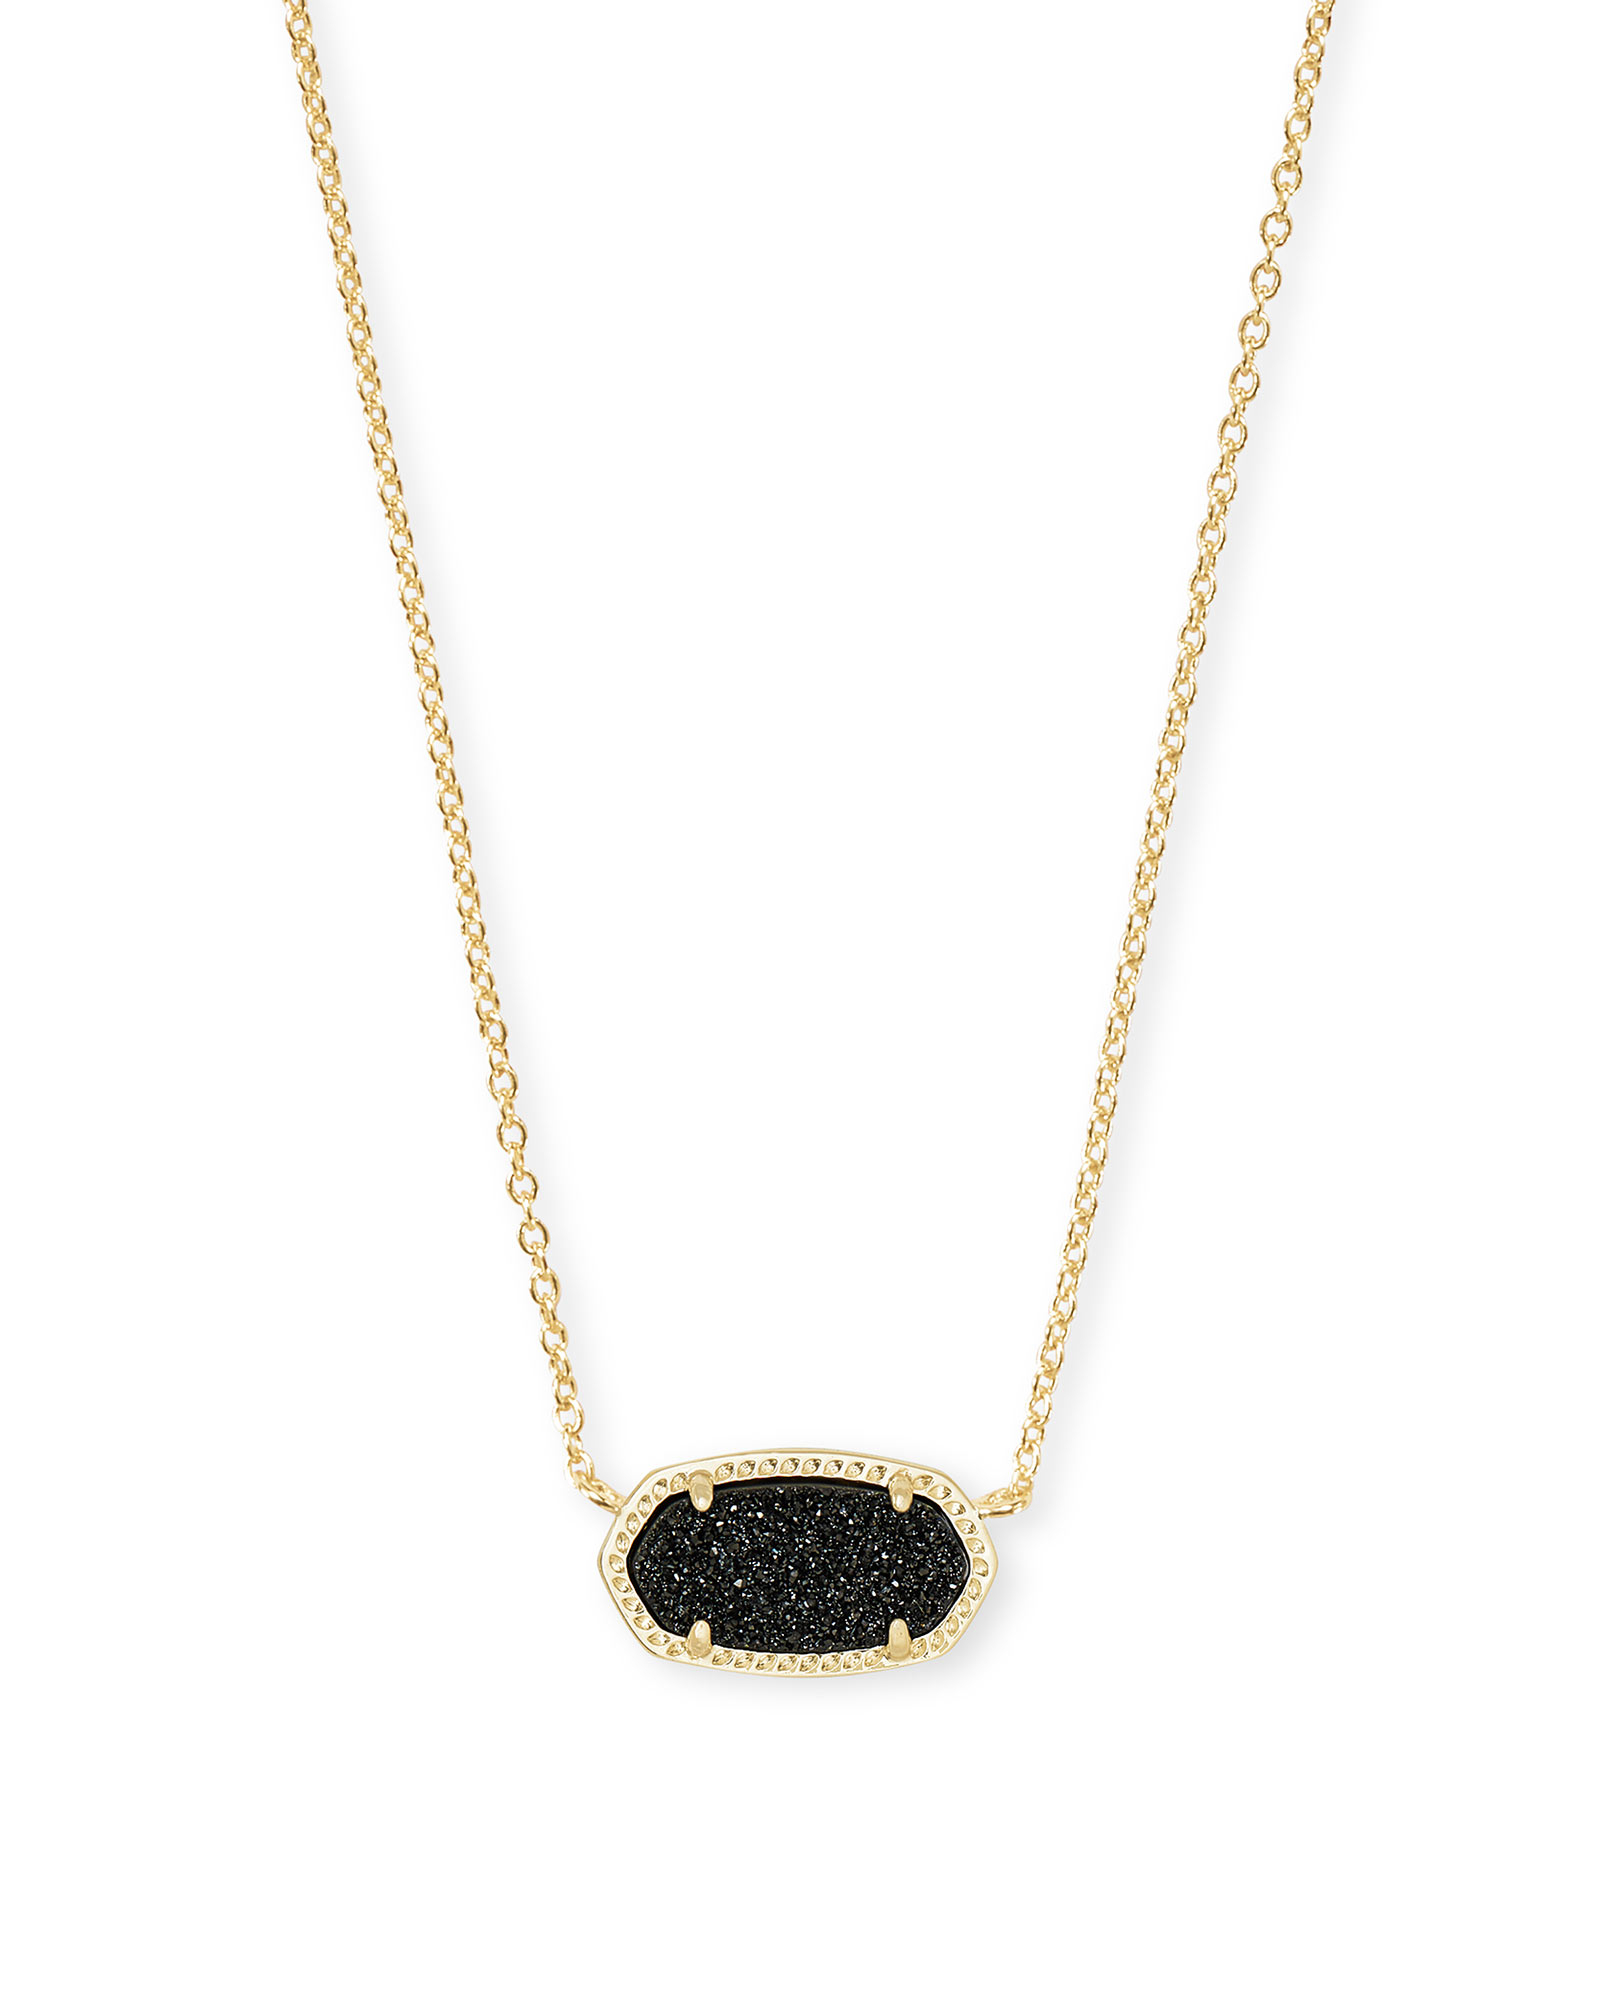 eb385f6077f24 Elisa Gold Pendant Necklace in Black Drusy | Kendra Scott